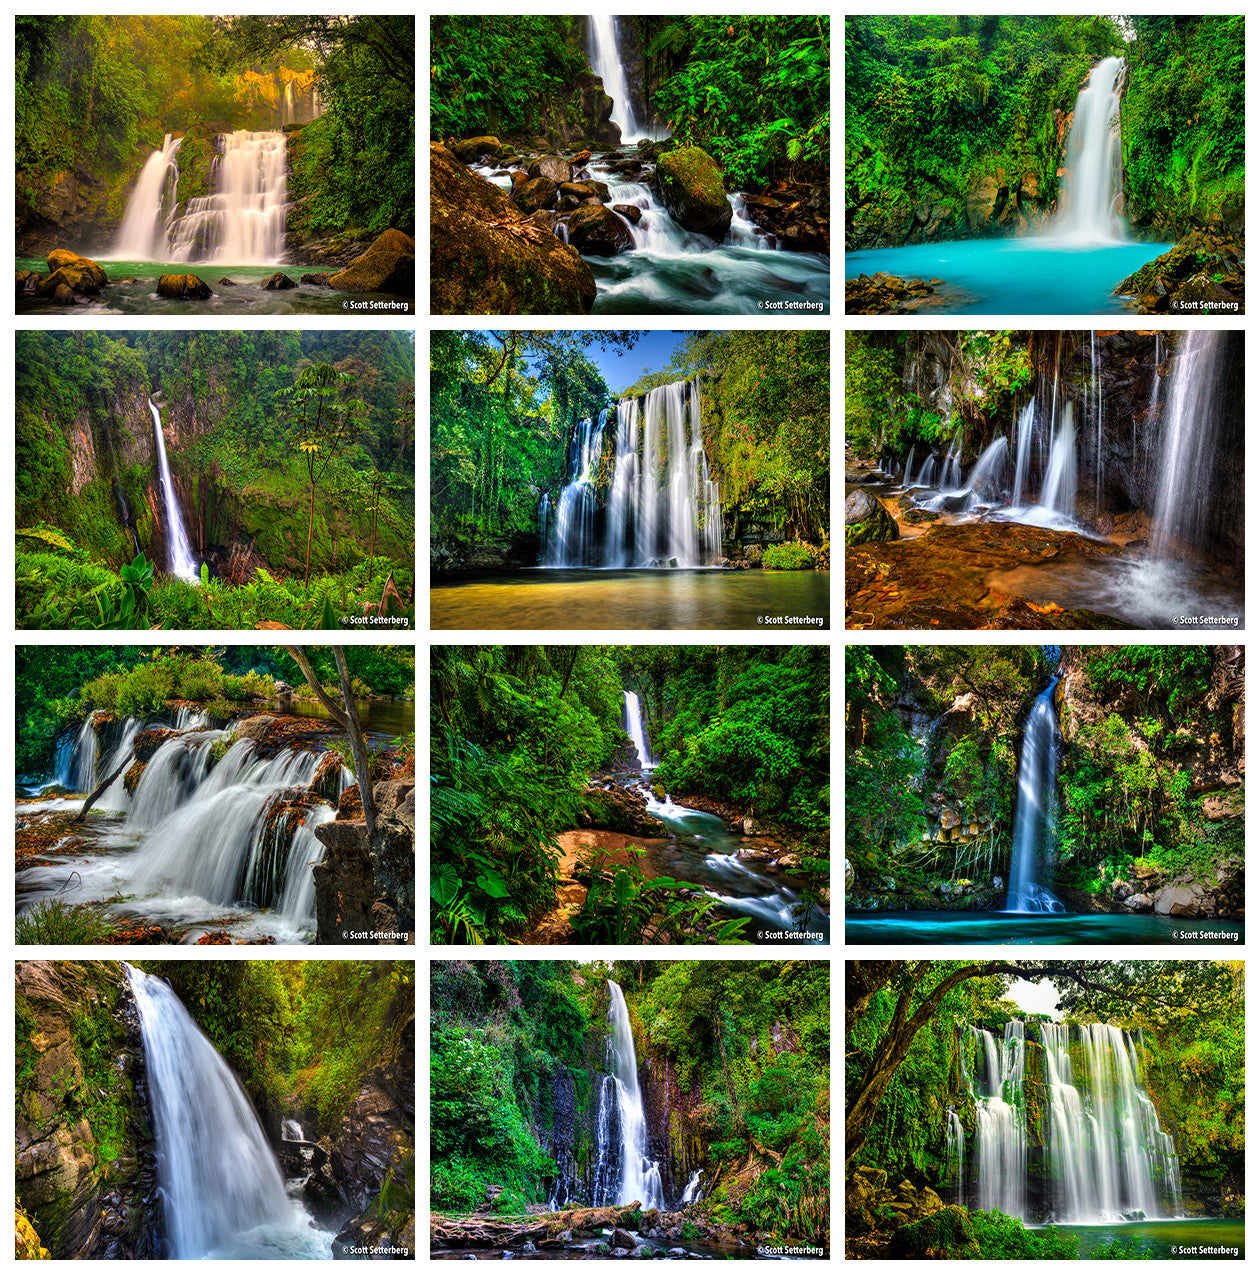 Costa Rica Waterfalls Tour Grid